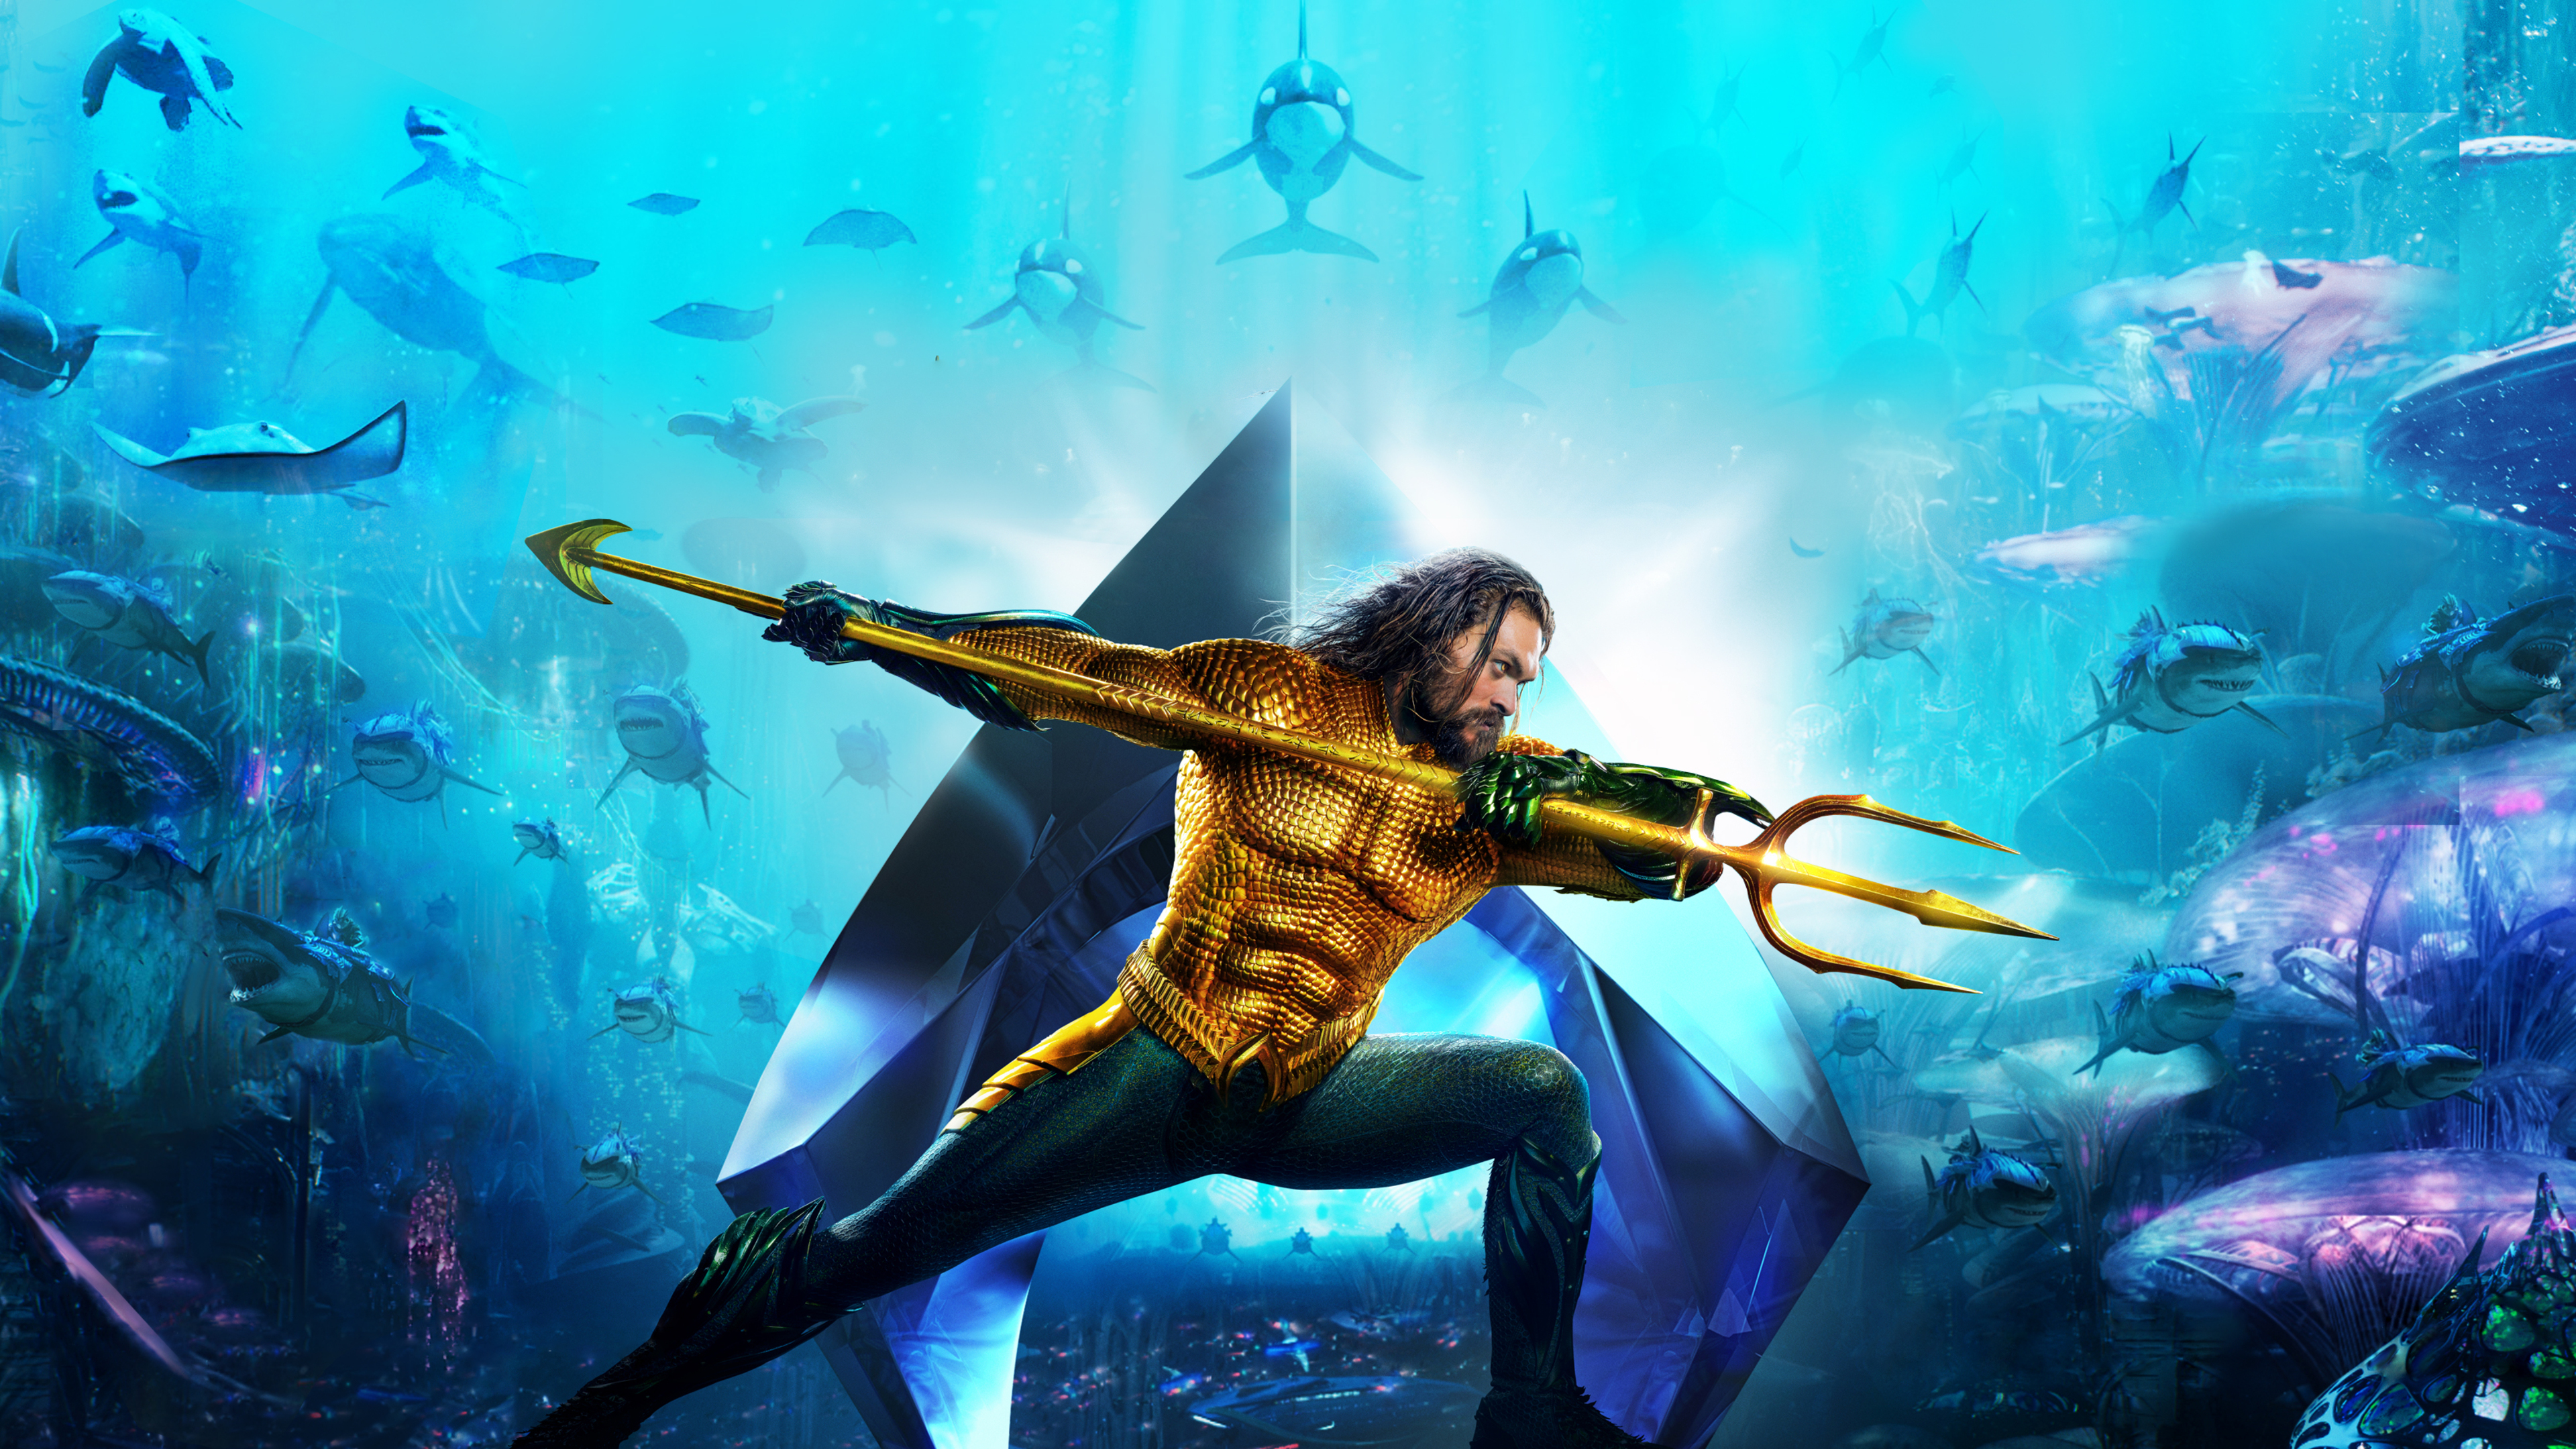 3840x2160 Aquaman Movie New Poster 2018 4k Hd 4k Wallpapers Images